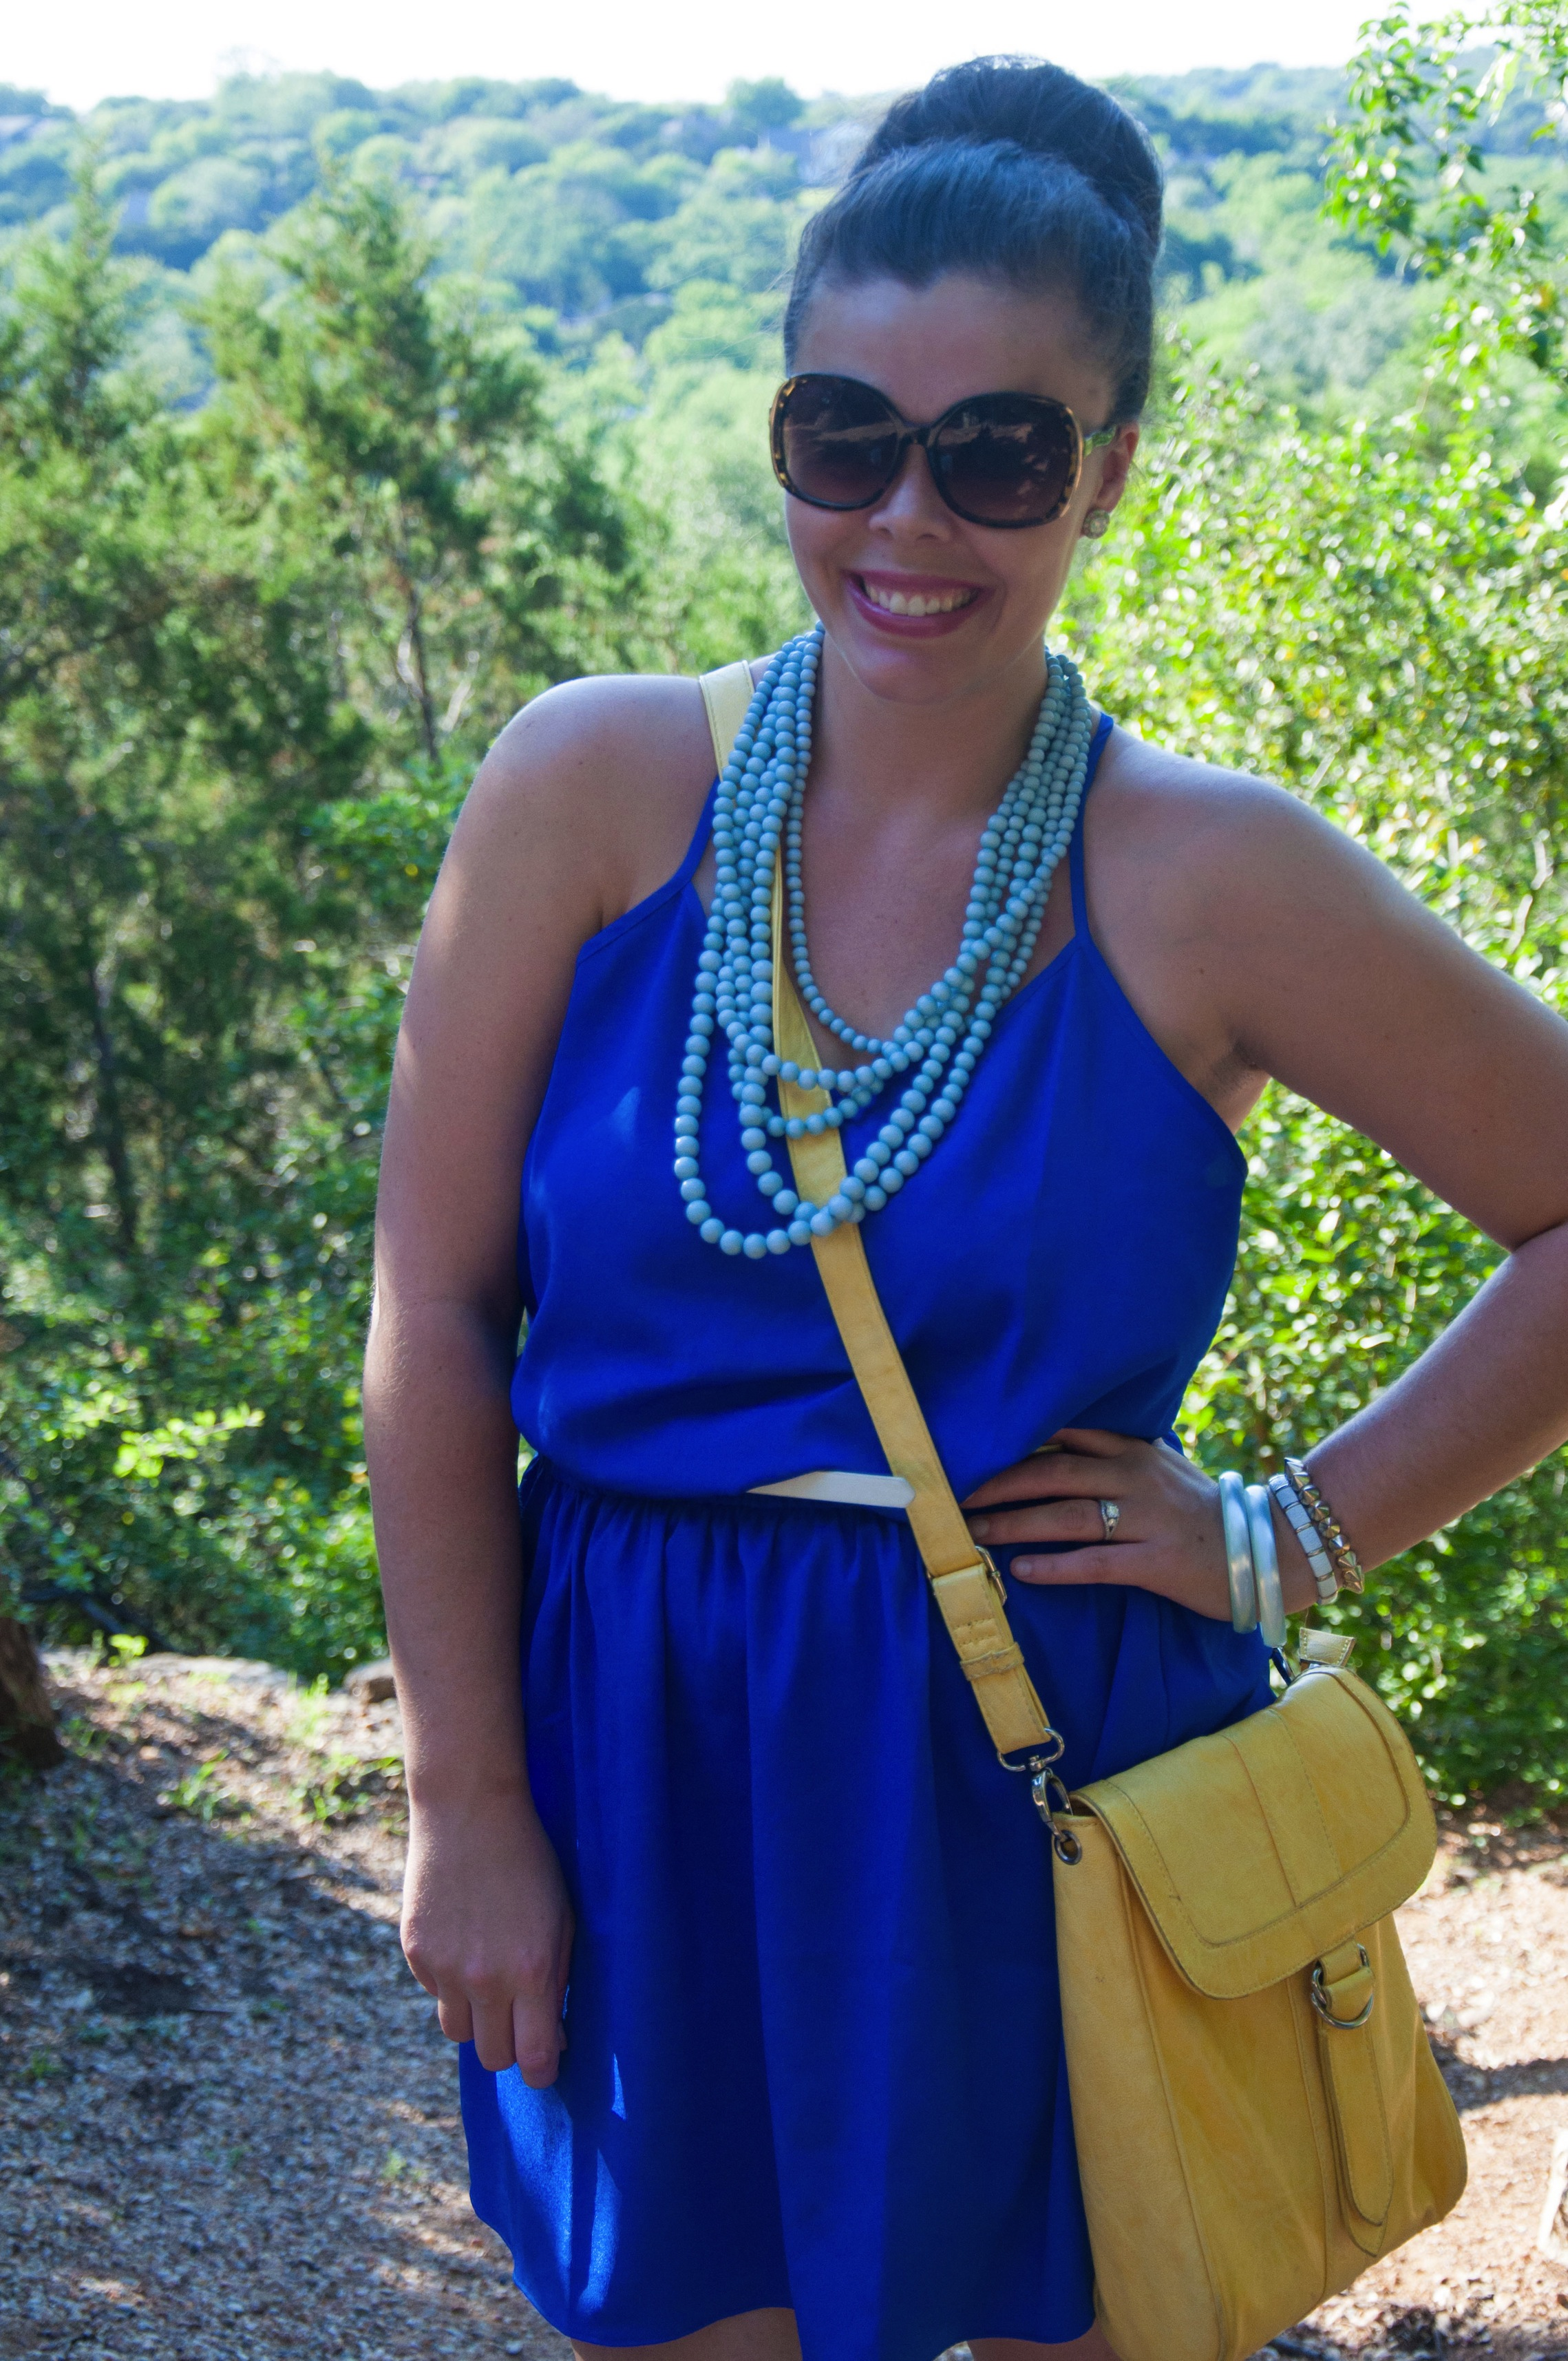 Cobalt dress with turquoise beaded necklace